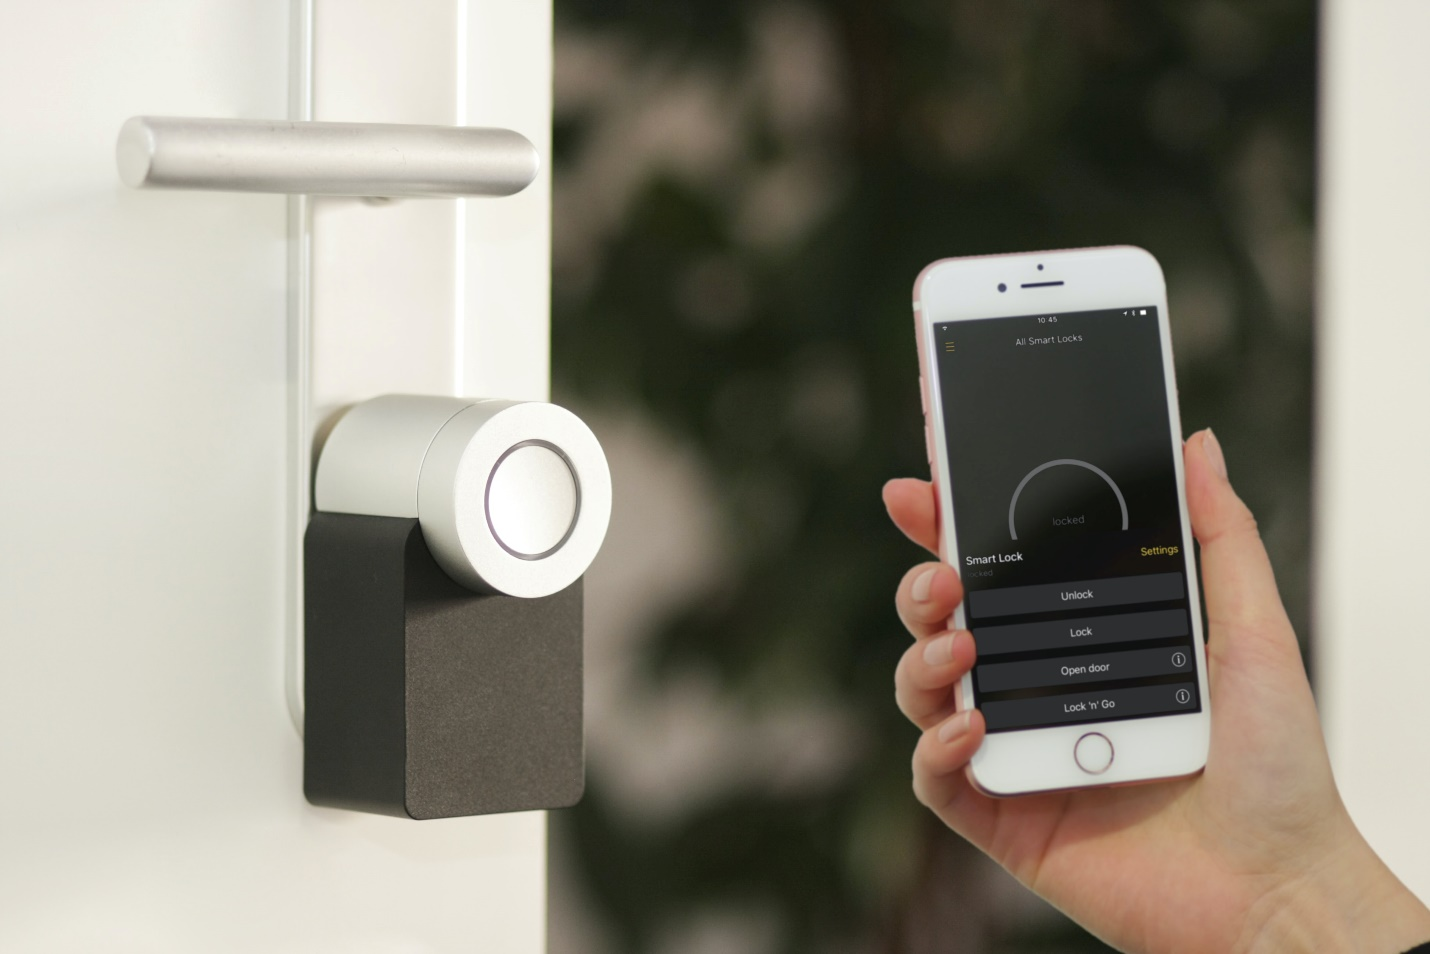 a smart lock system with its phone application